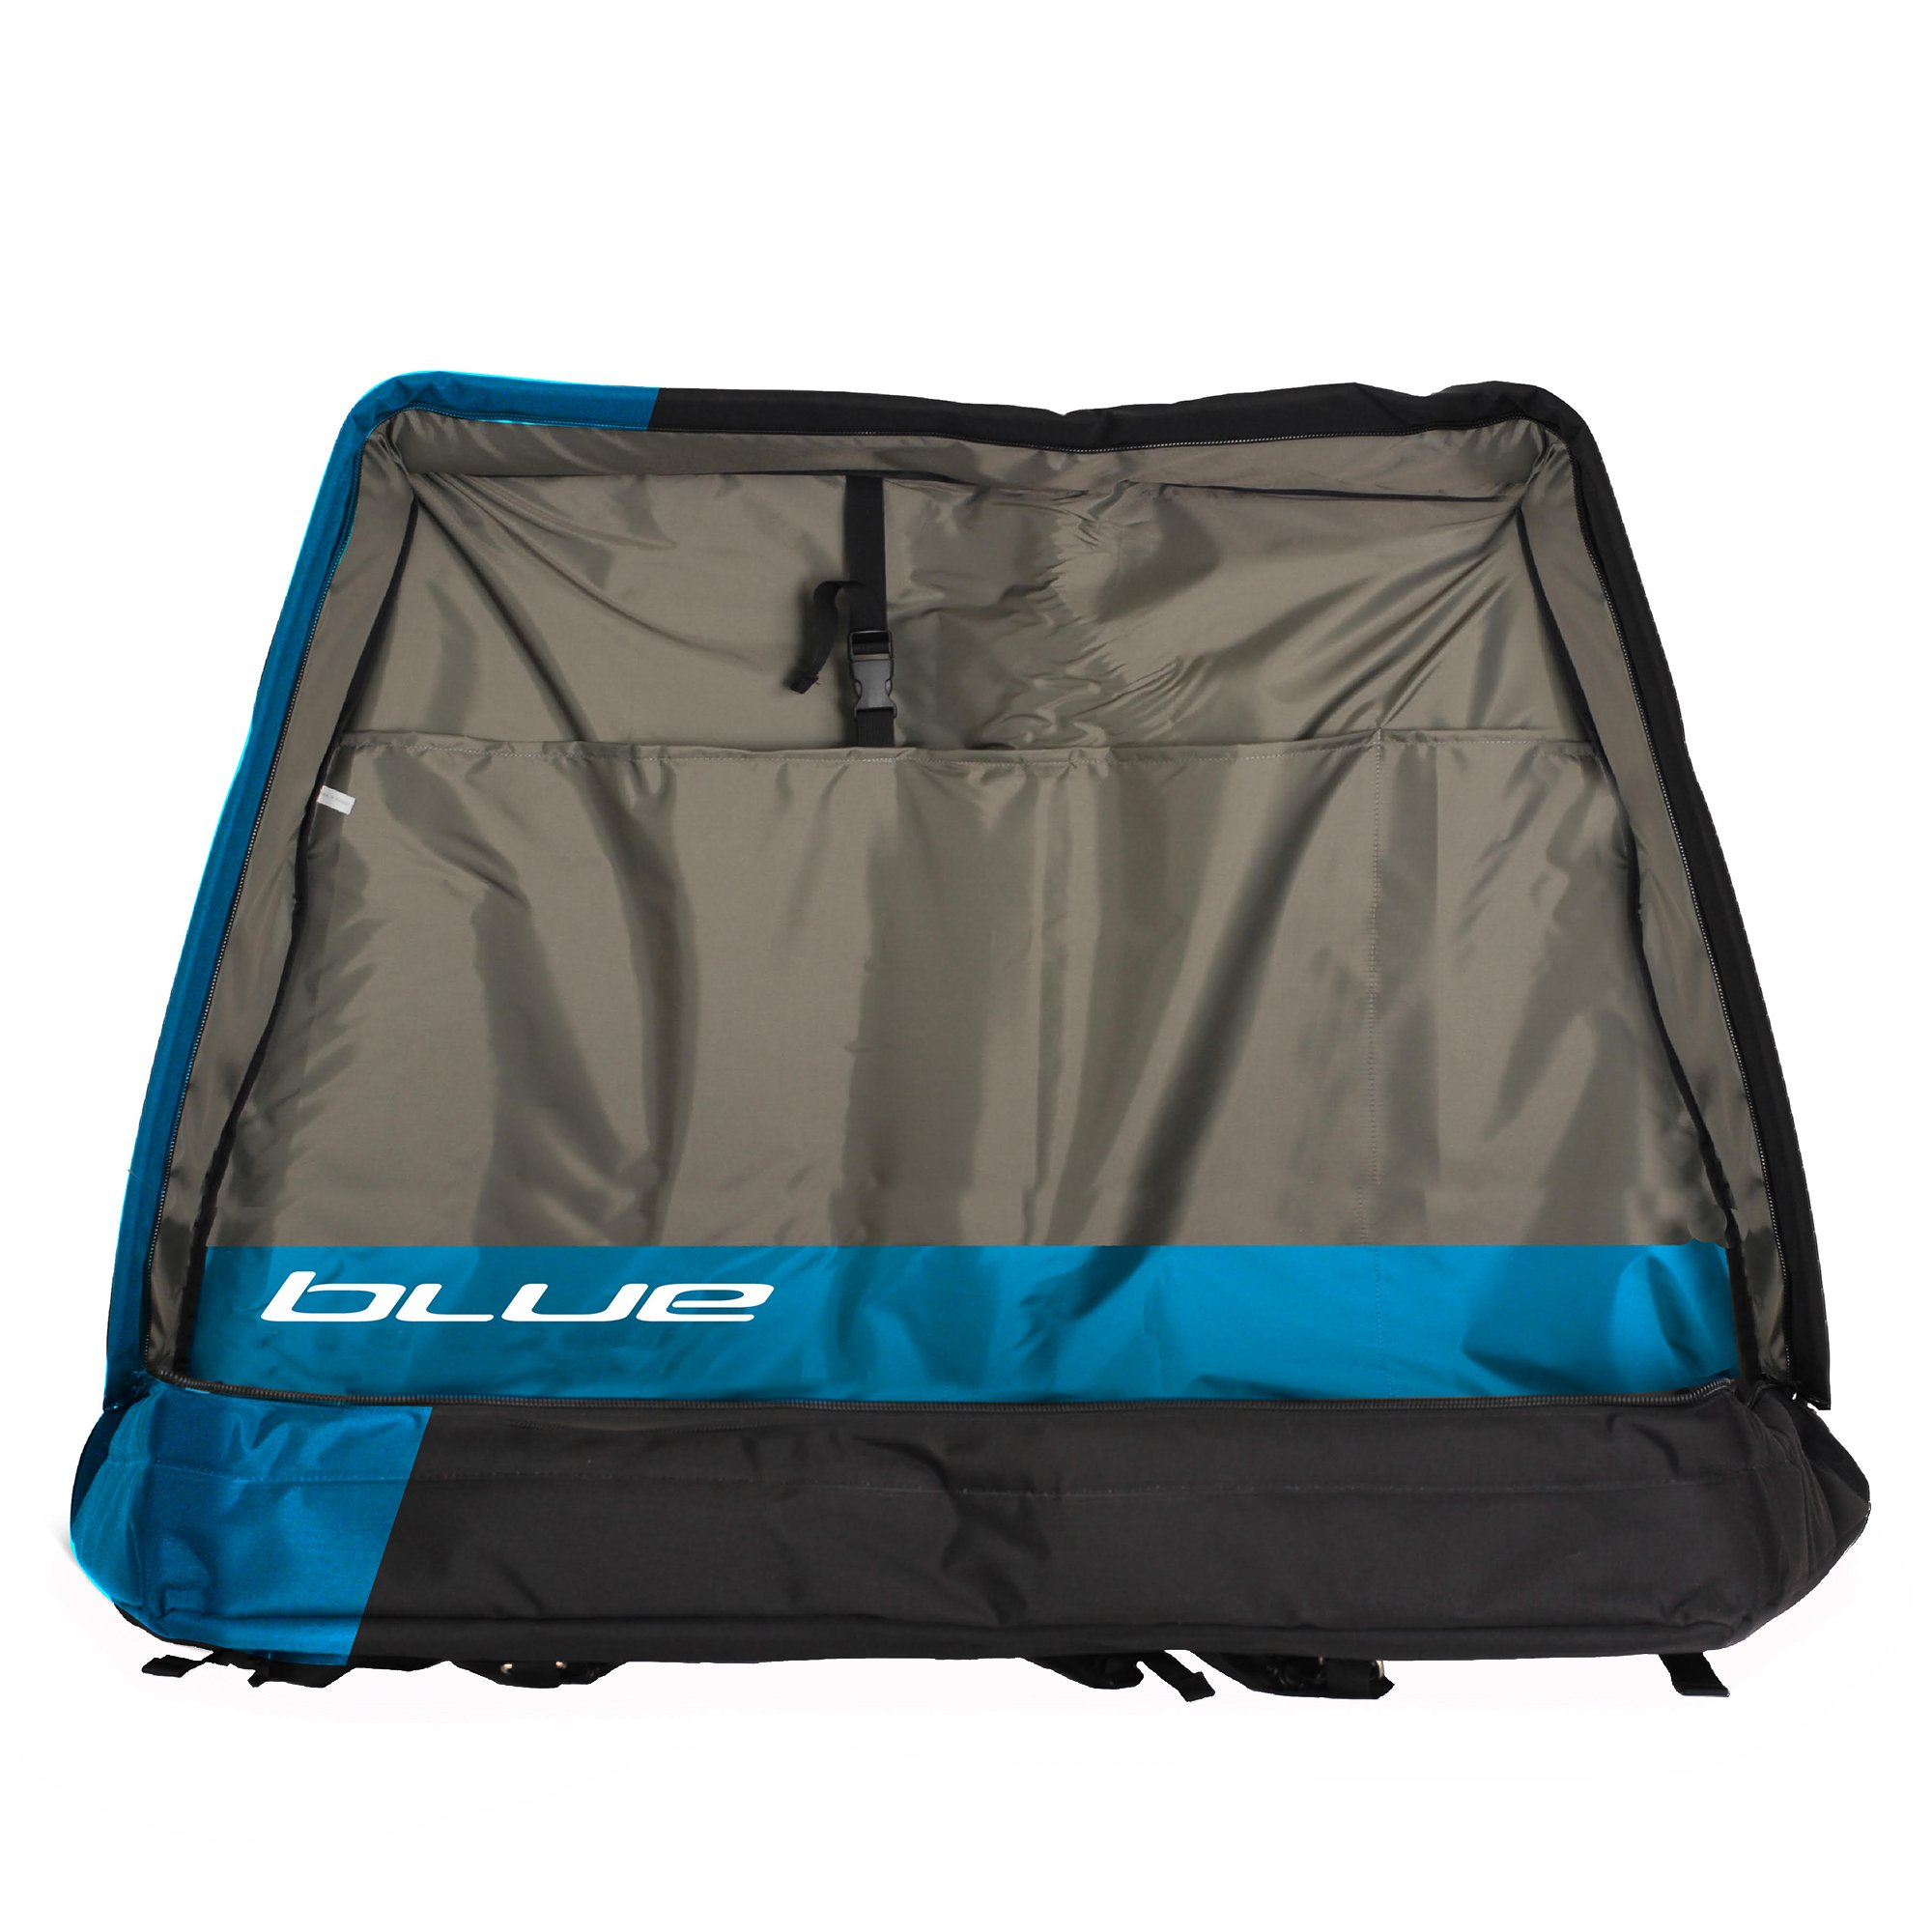 Blue Bike Travel Case with Wheels by Blue Competition Cycles (Image #2)